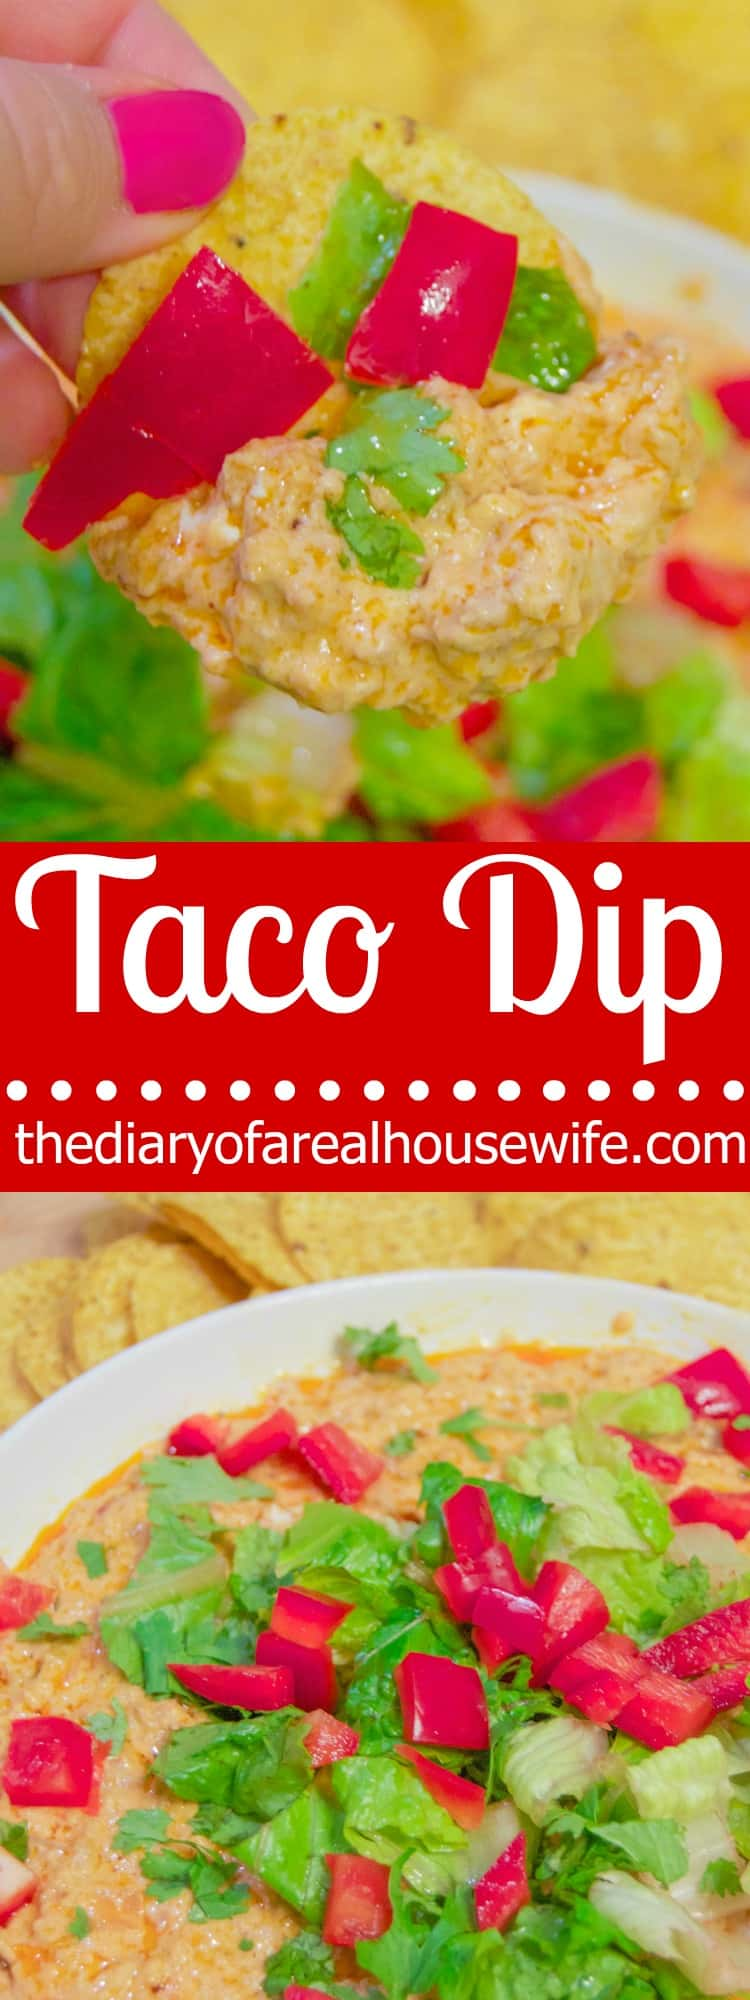 awesome-taco-dip-i-love-this-easy-recipe